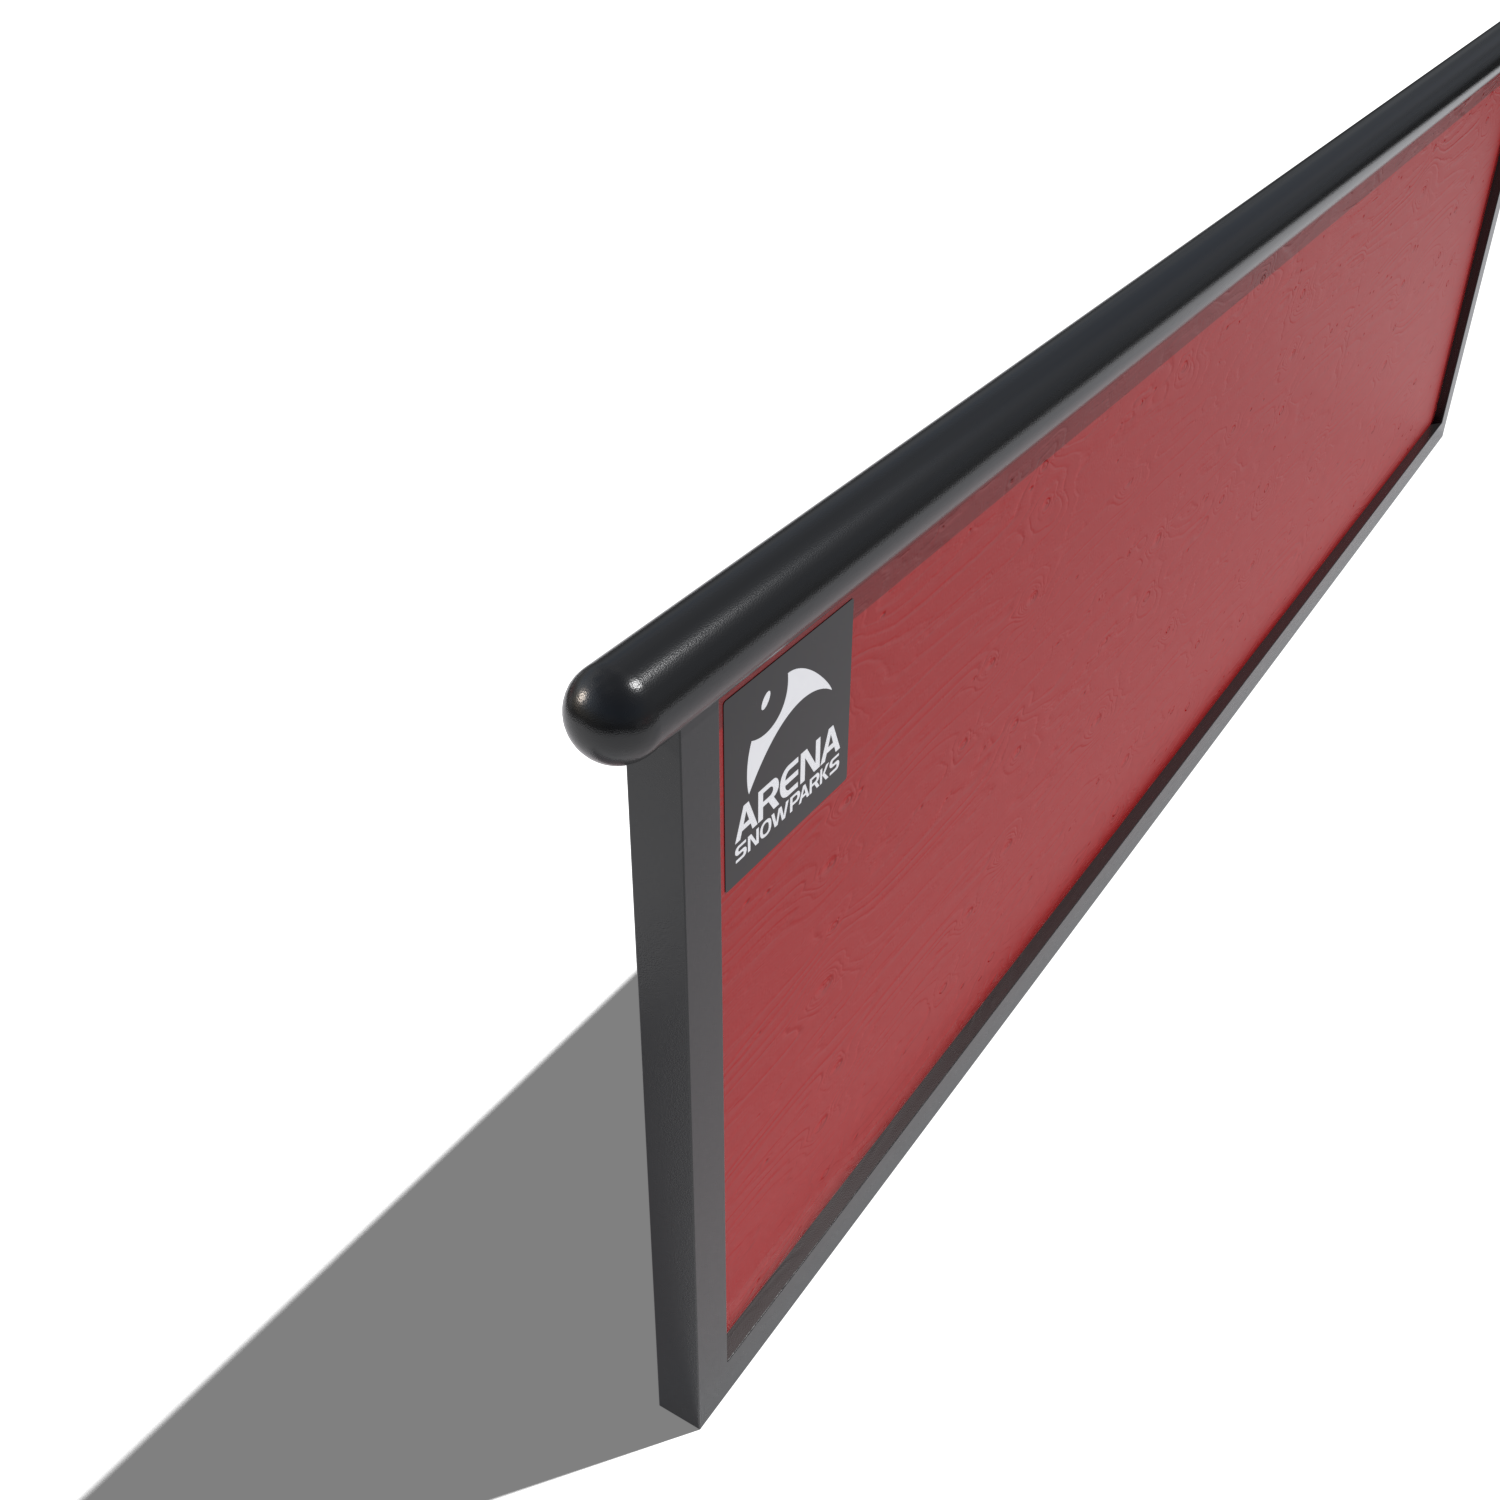 ASP - Sliding Surfaces 04 - Single Bar.png